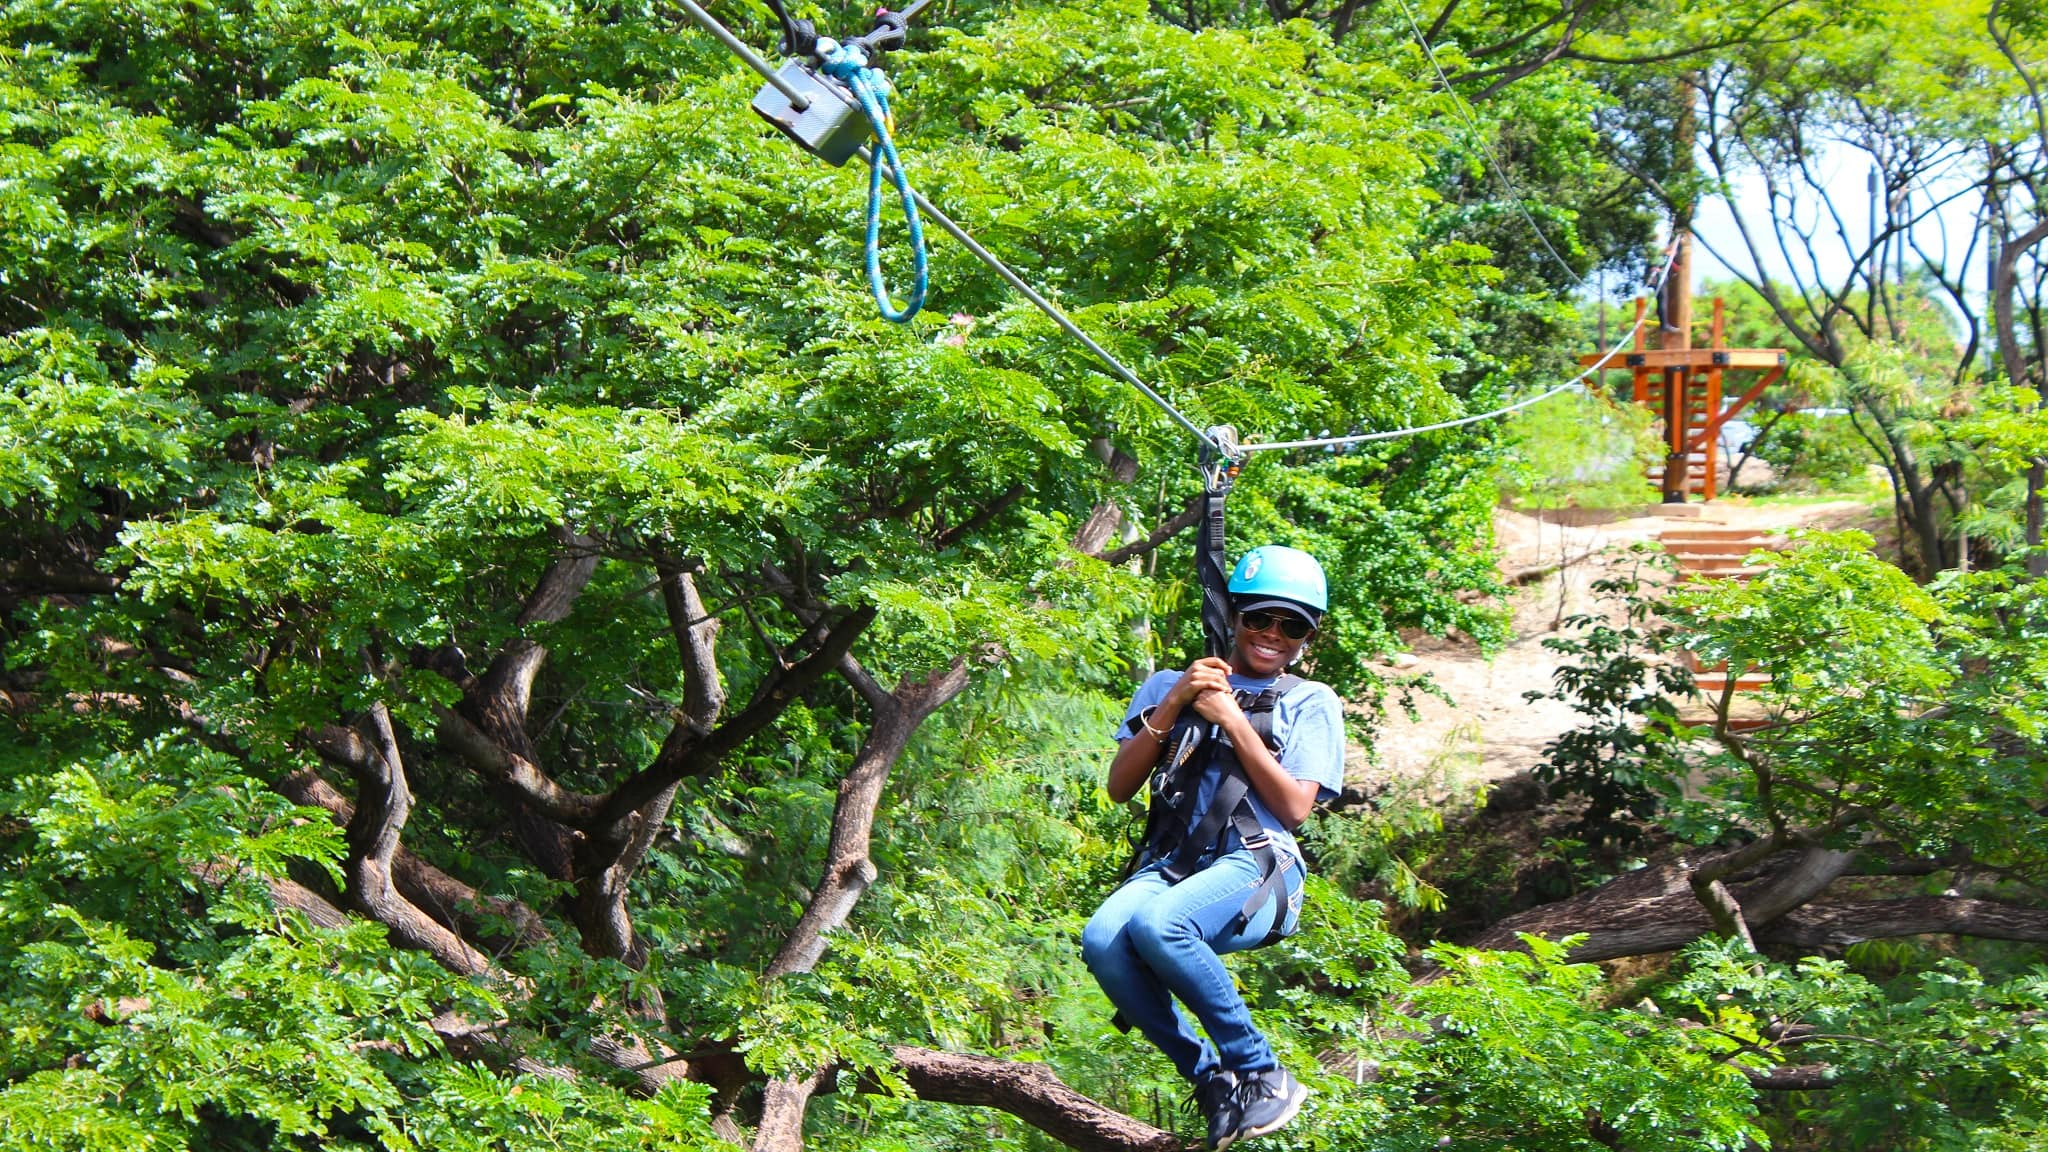 A helmeted rider on a zip line traversing a canopy of trees